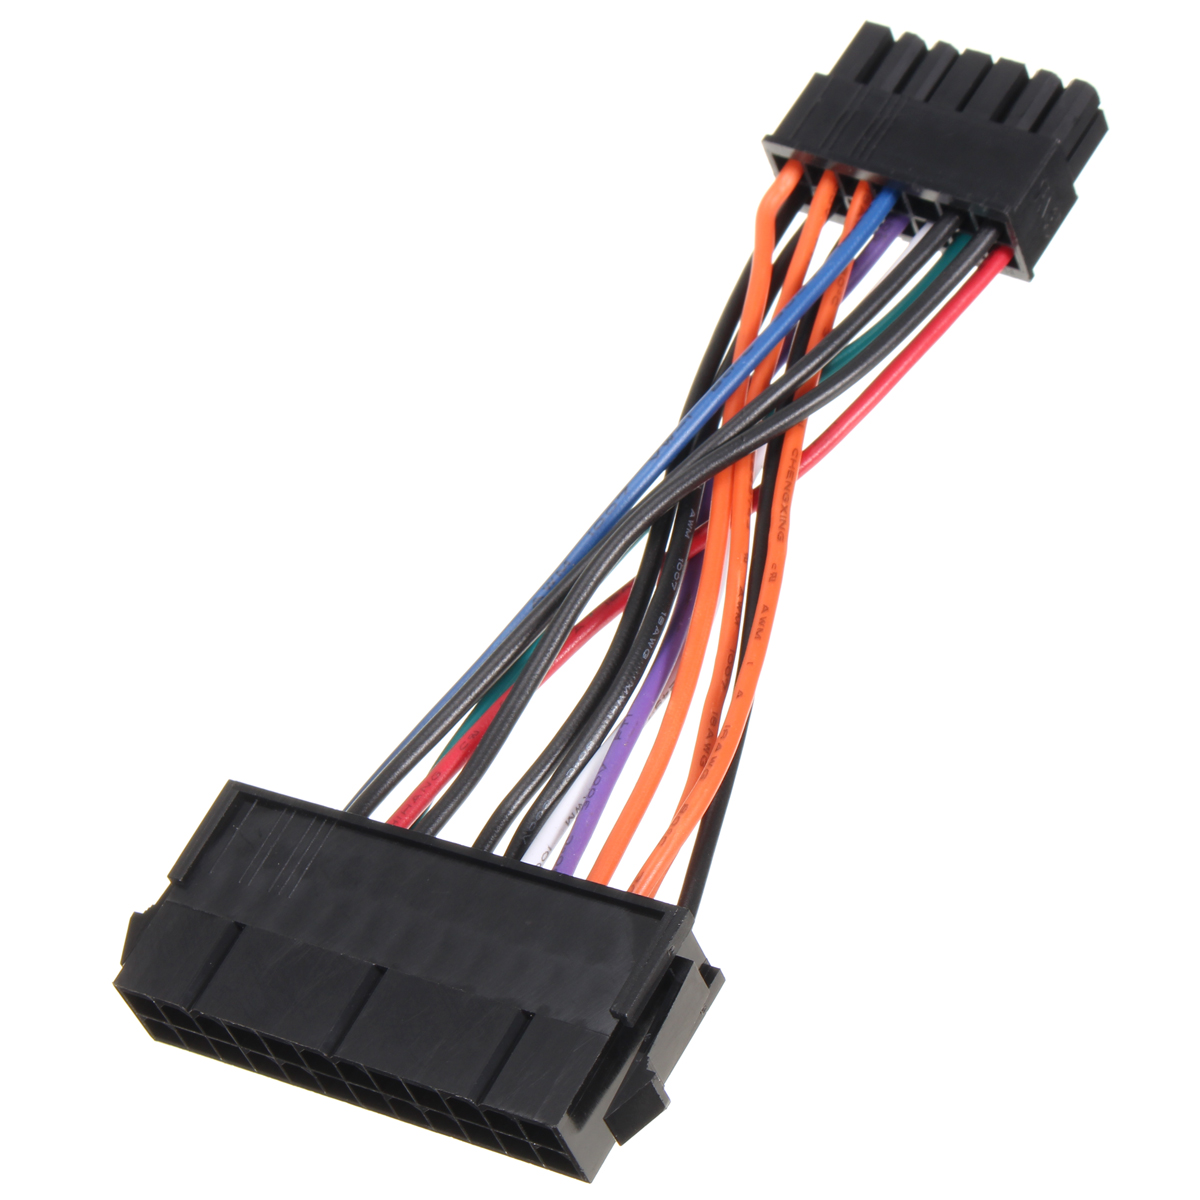 24Pin to 14pin 14p Power Supply ATX Cable Cord For Lenovo Q77 B75 A75 Q75 TS140/440